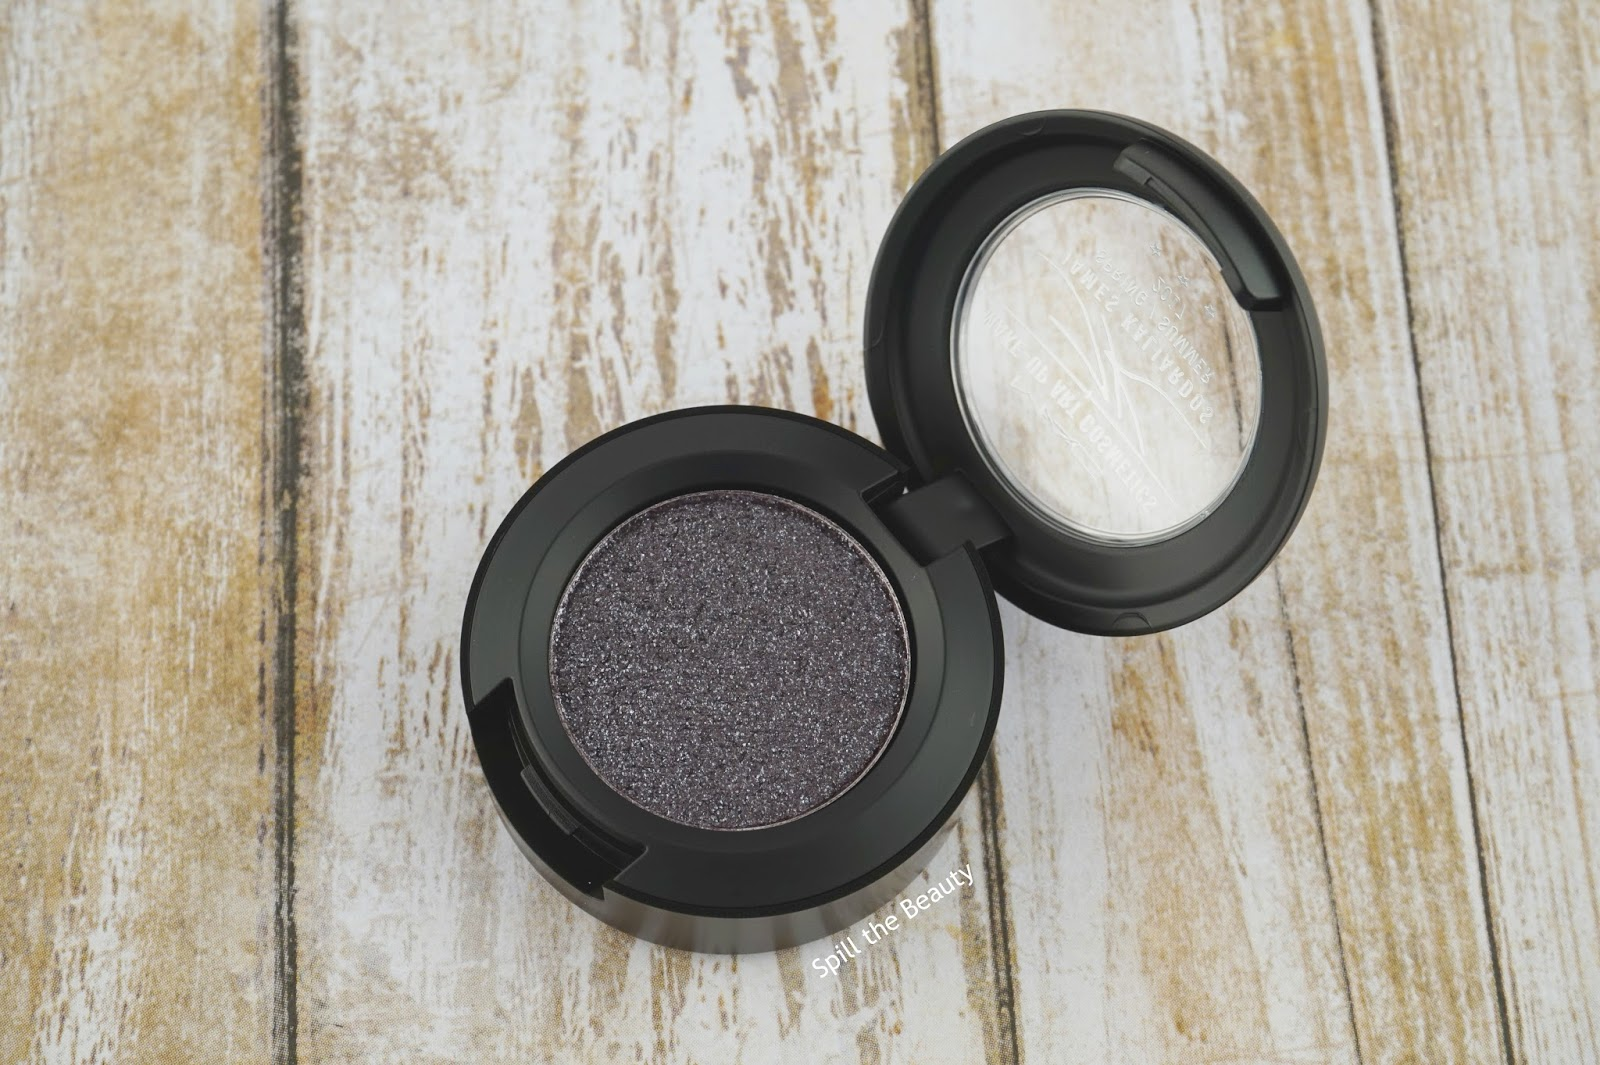 mac make-up art cosmetics james kaliardos black grape pressed pigment review swatches